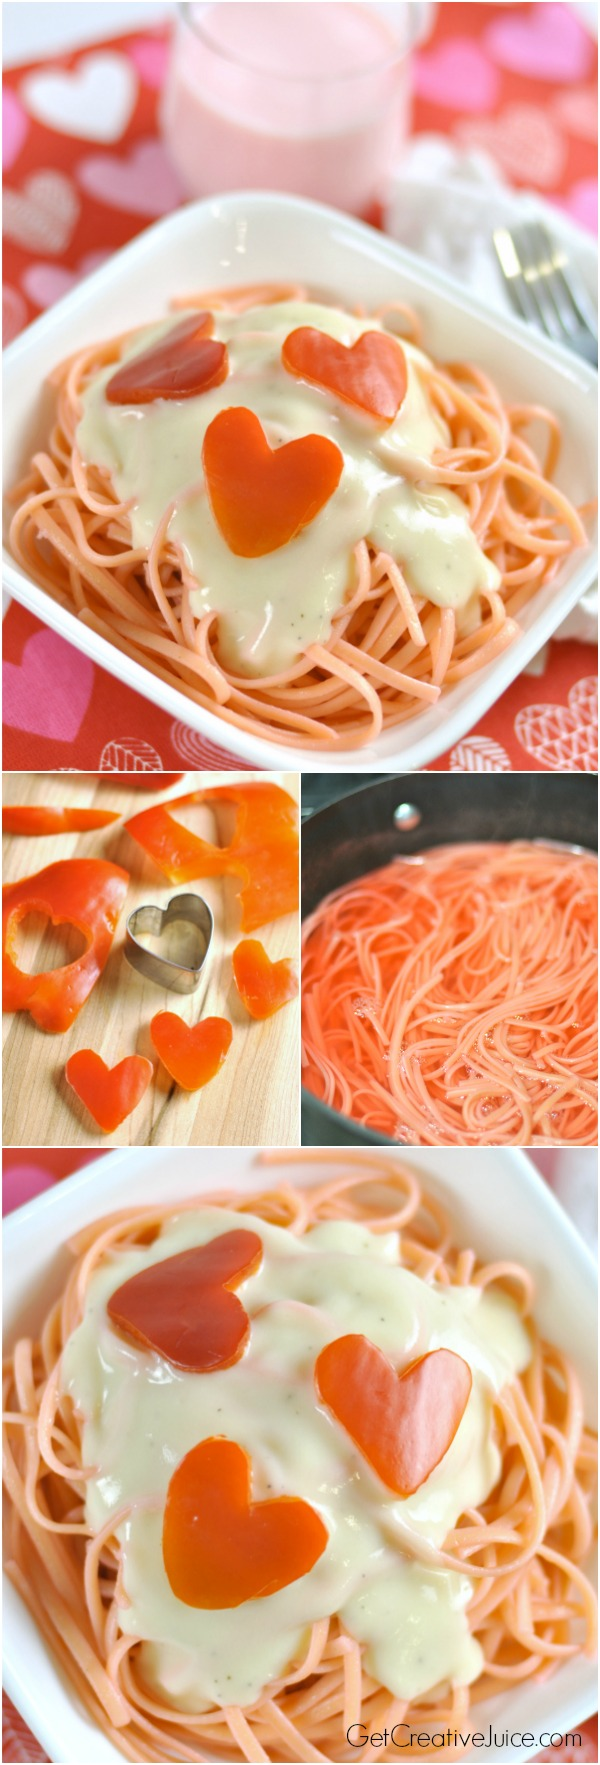 Valentines Day dinner idea - Pink pasta with red pepper hearts